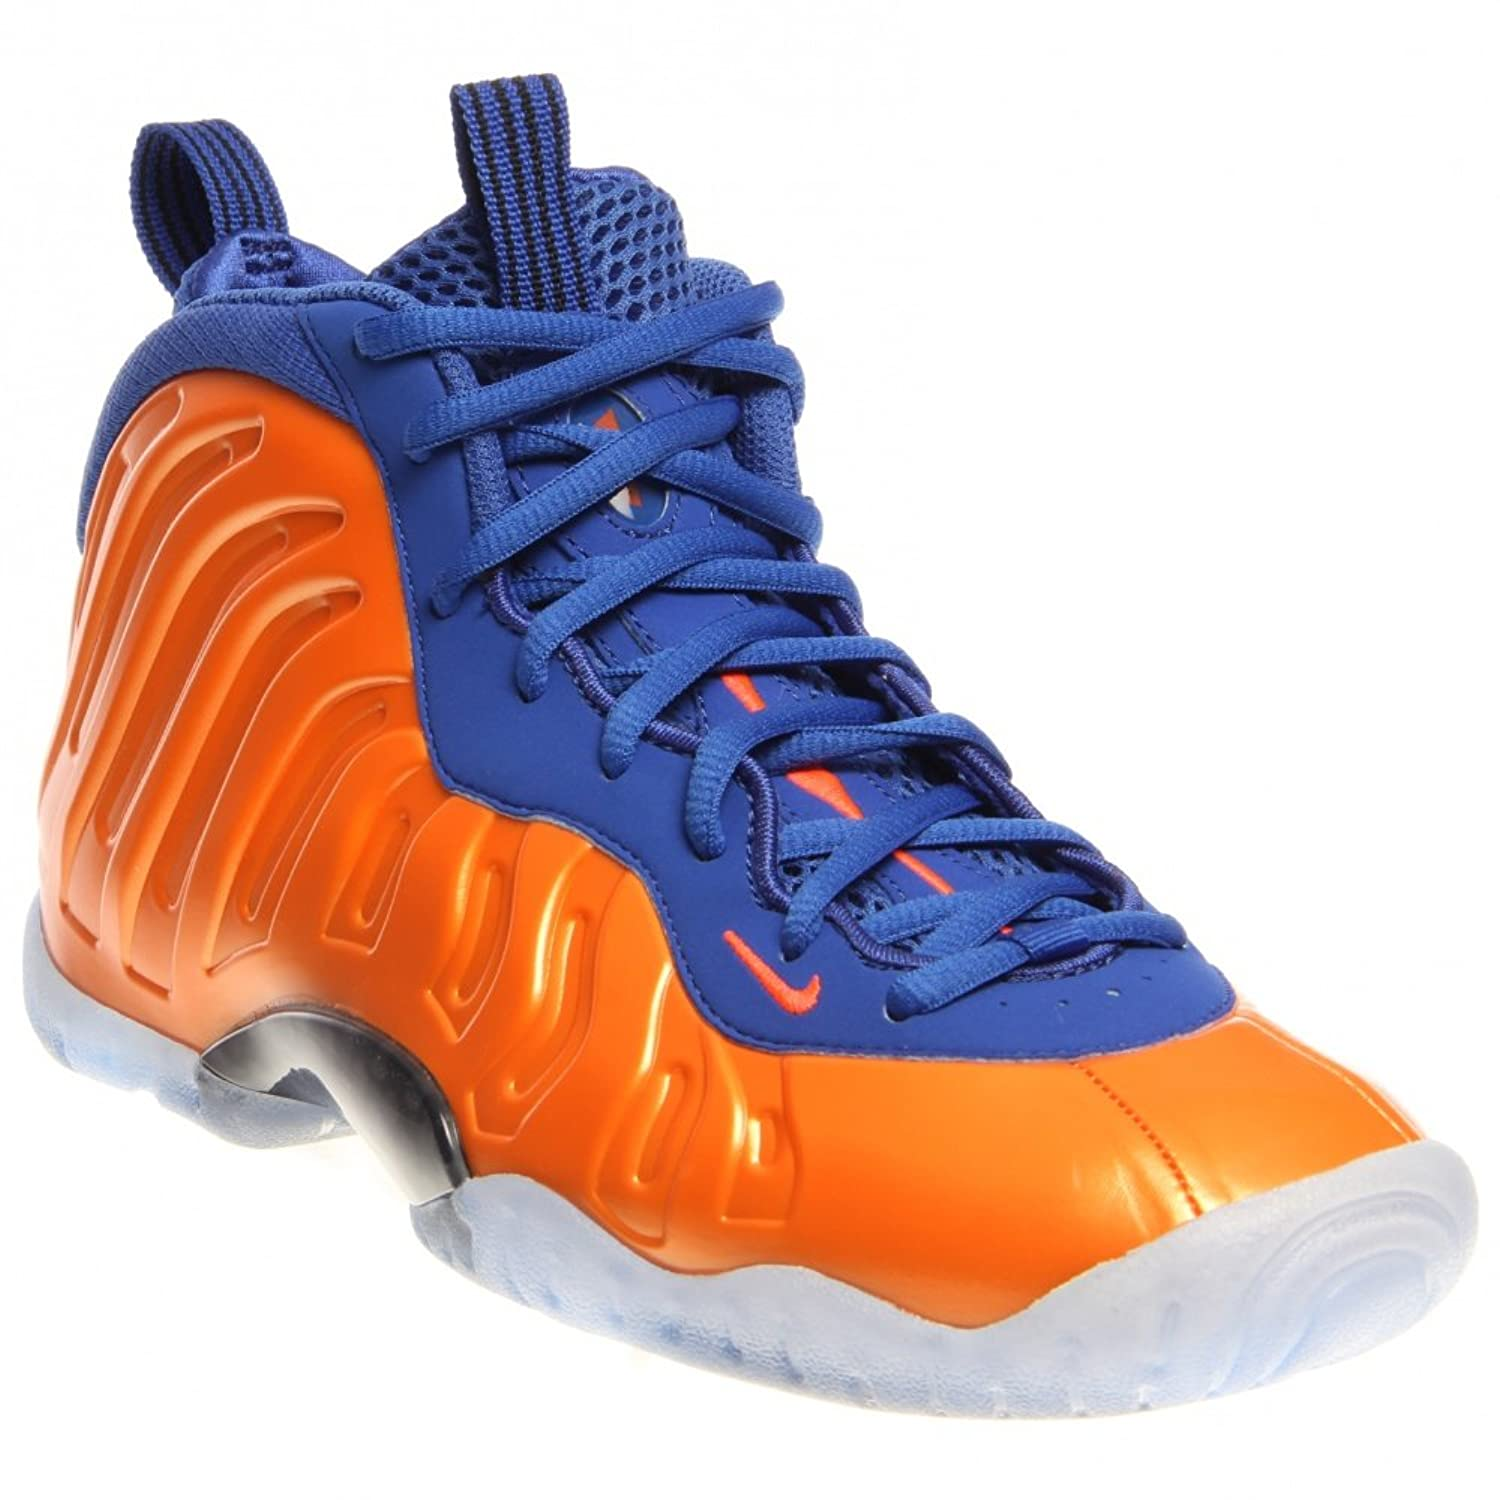 Amazon.com | Nike Little Posite One (GS) 644791-800 Total Crimson/Game Royal /Black Kids Shoes (6.5y) | Basketball